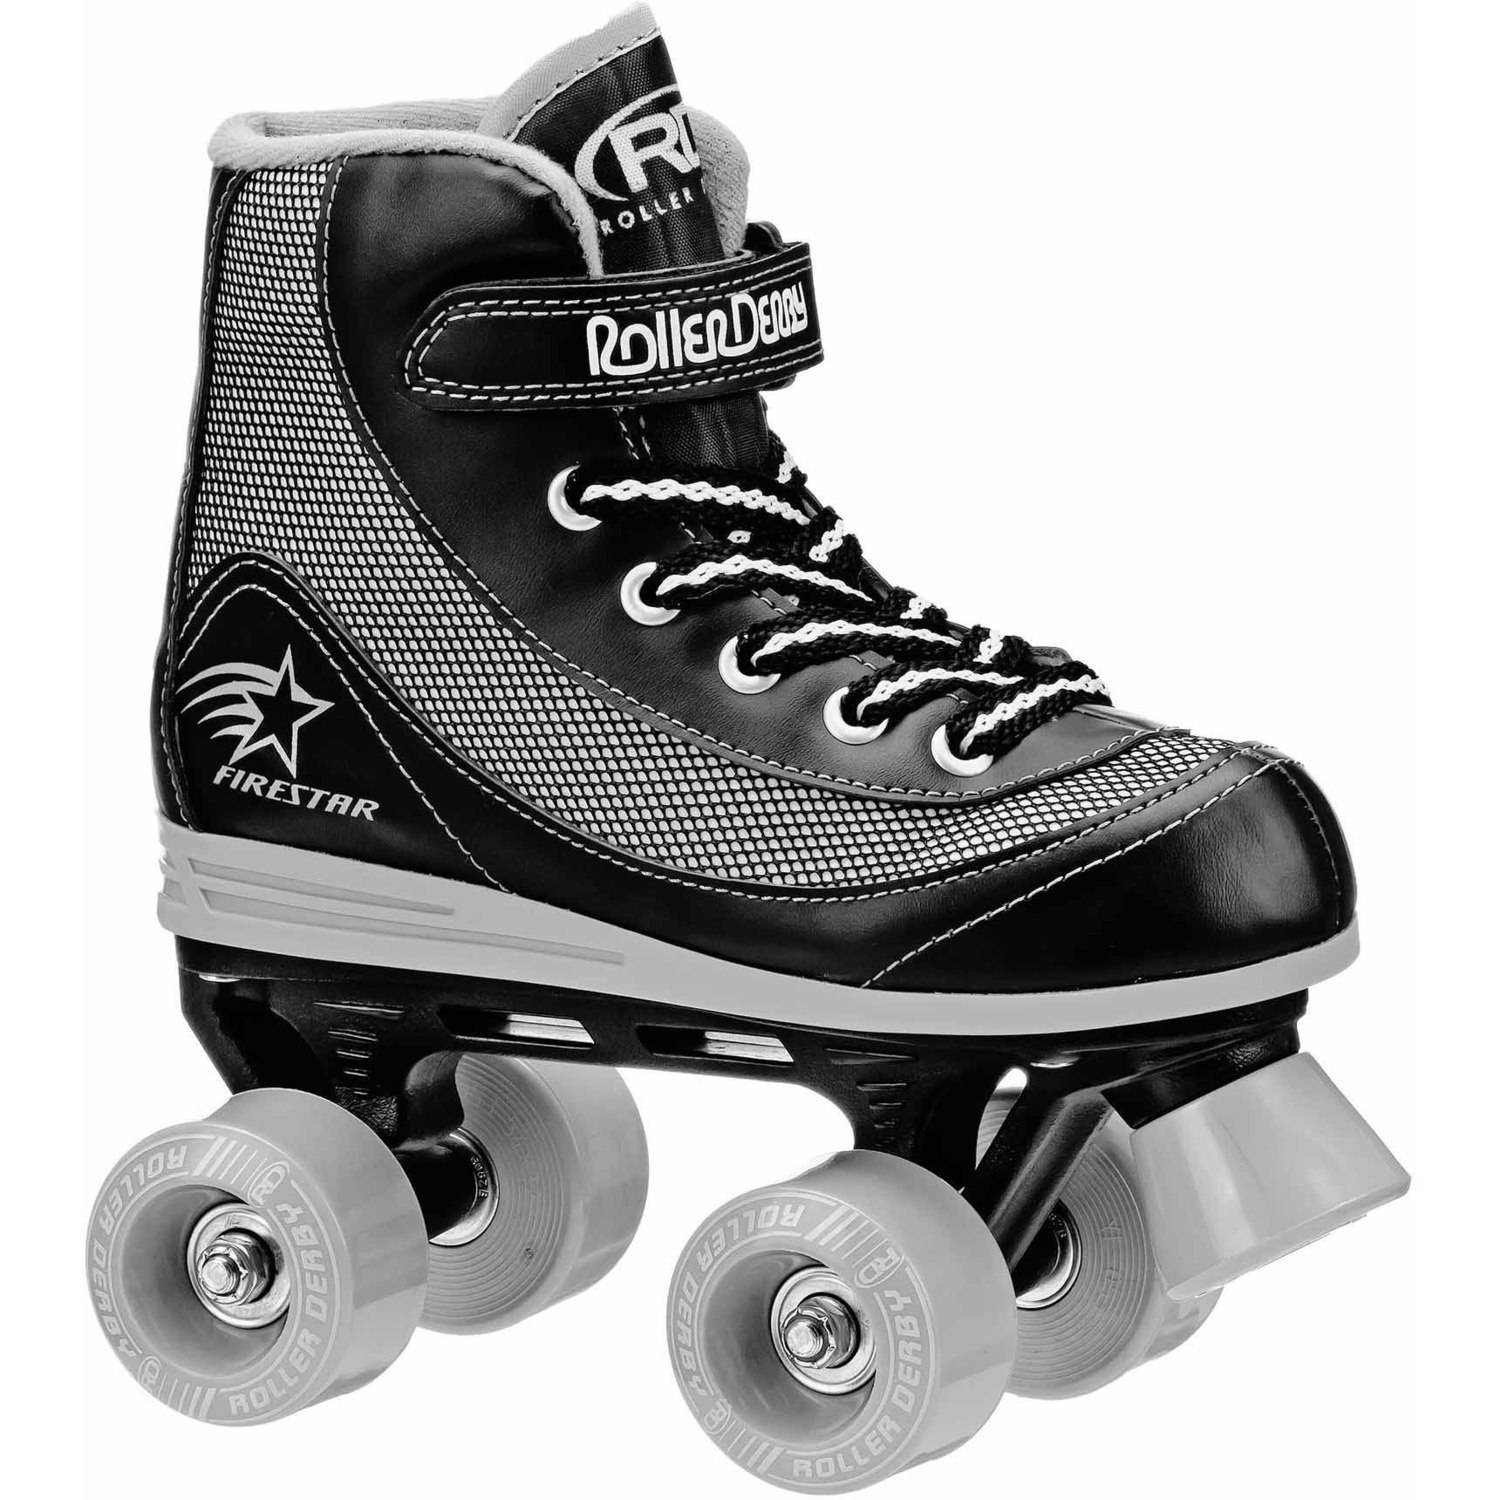 Roller Derby Boys' FireStar Quad Roller Skates, Black/Grey